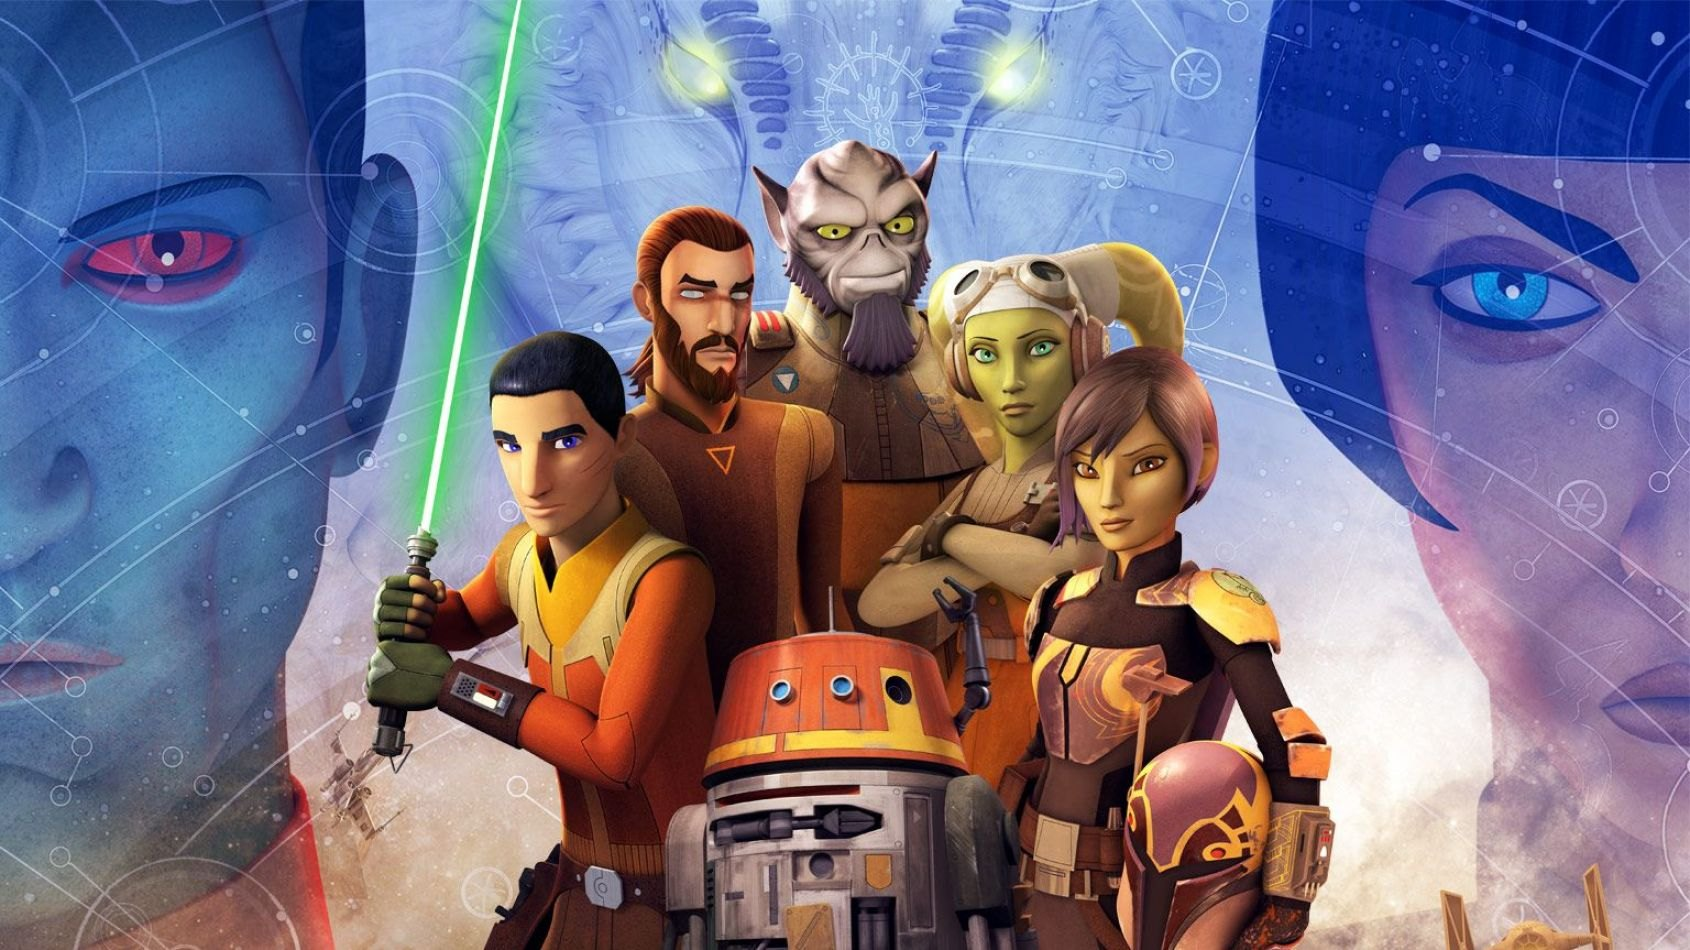 Un drame à venir dans Star Wars Rebels ?